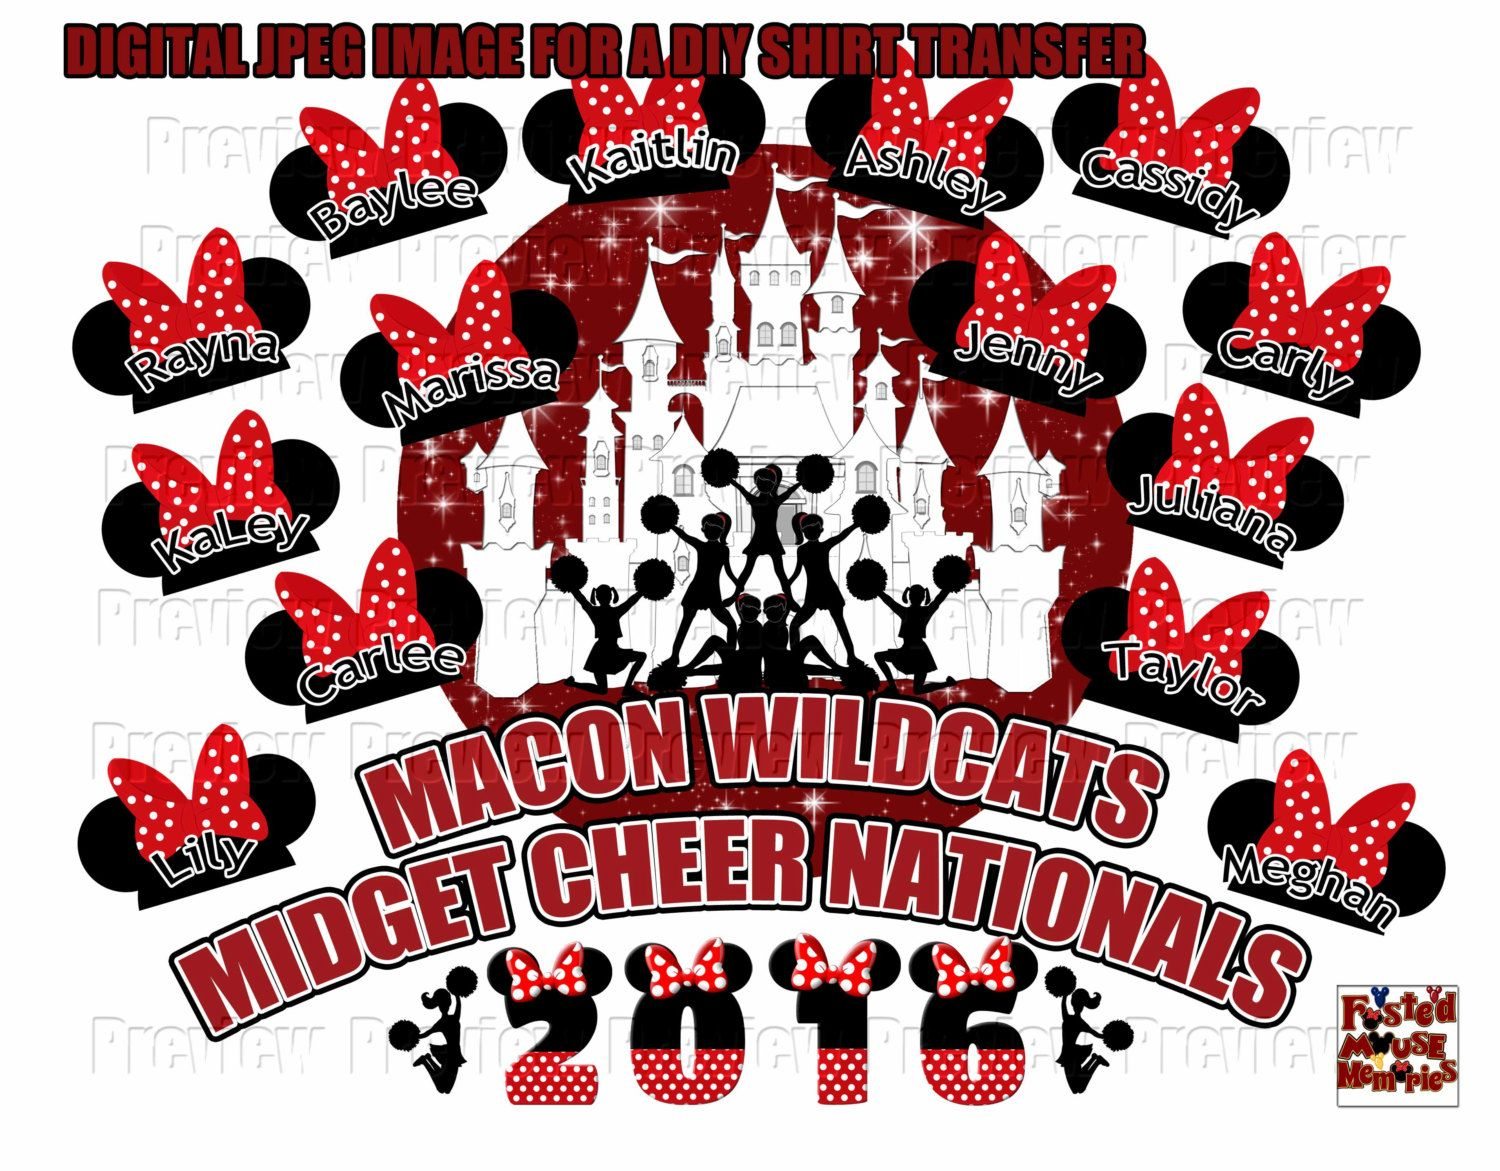 Cheer Shirt Design Ideas custom cheer shirts Personalized Cheer Nationals T Shirt Transfer Design Diy Disney Cheerleaders Shirt Diy Cheerleading Team Shirt Transfer Image